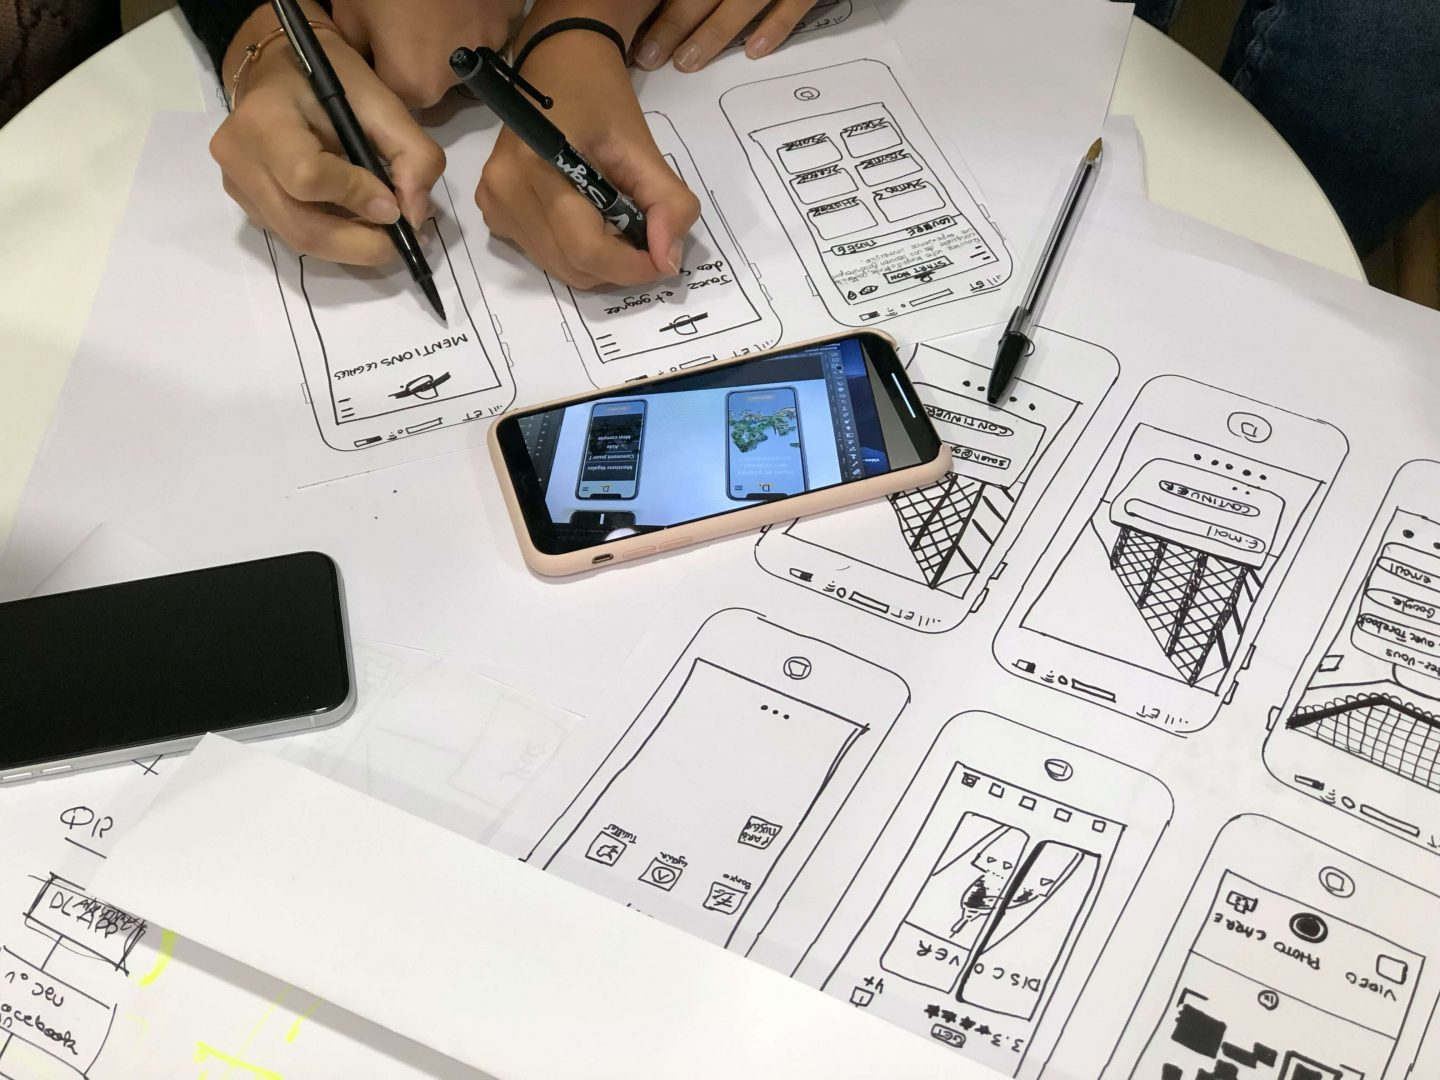 Designing often starts with a piece of paper and a pen to draw initial wireframes of the project.